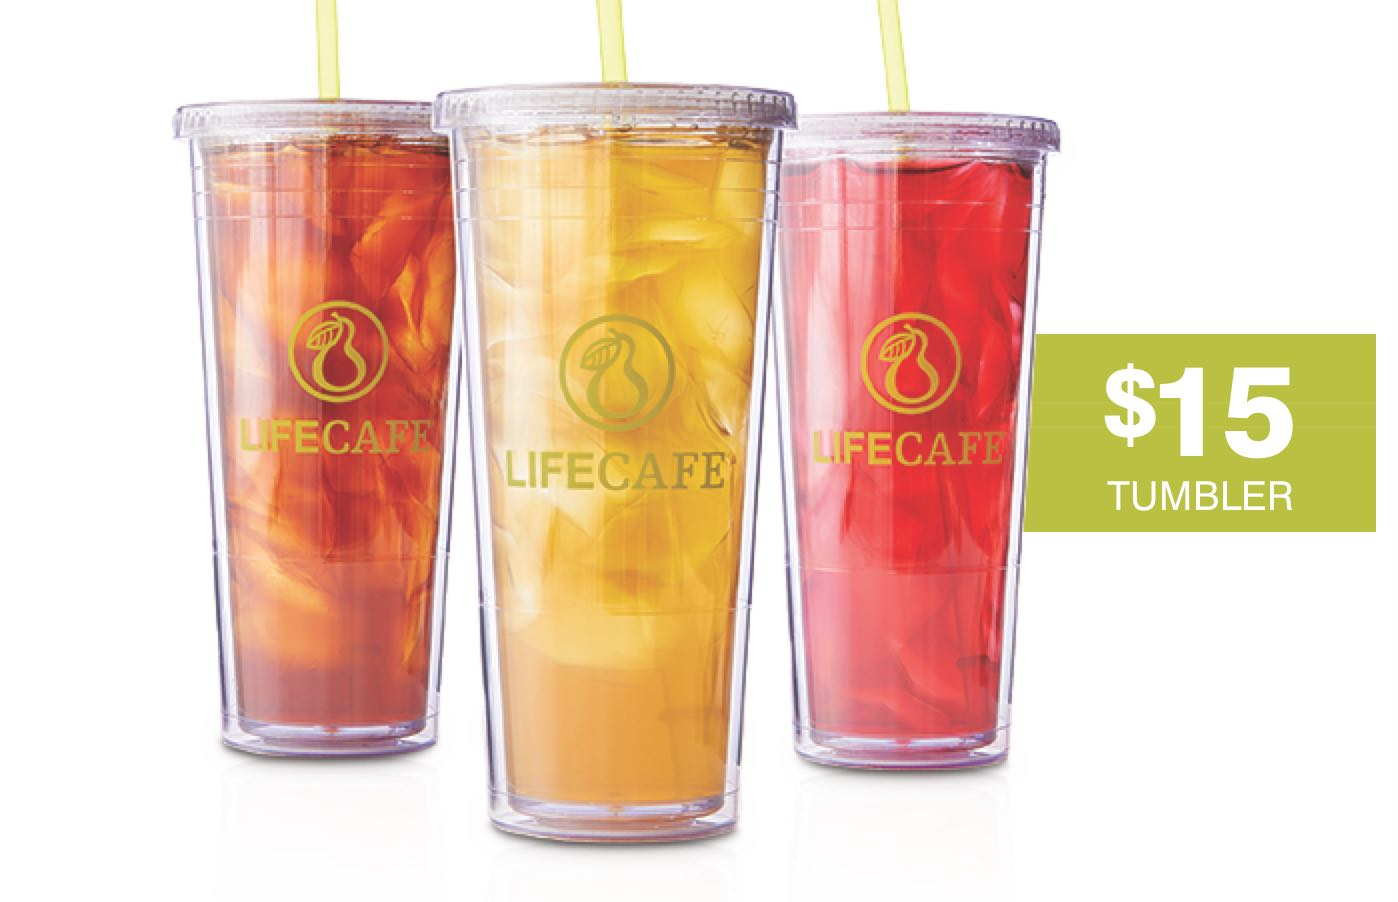 Life Cafe Iced Tea Tumbers in 3 different flavors for $15